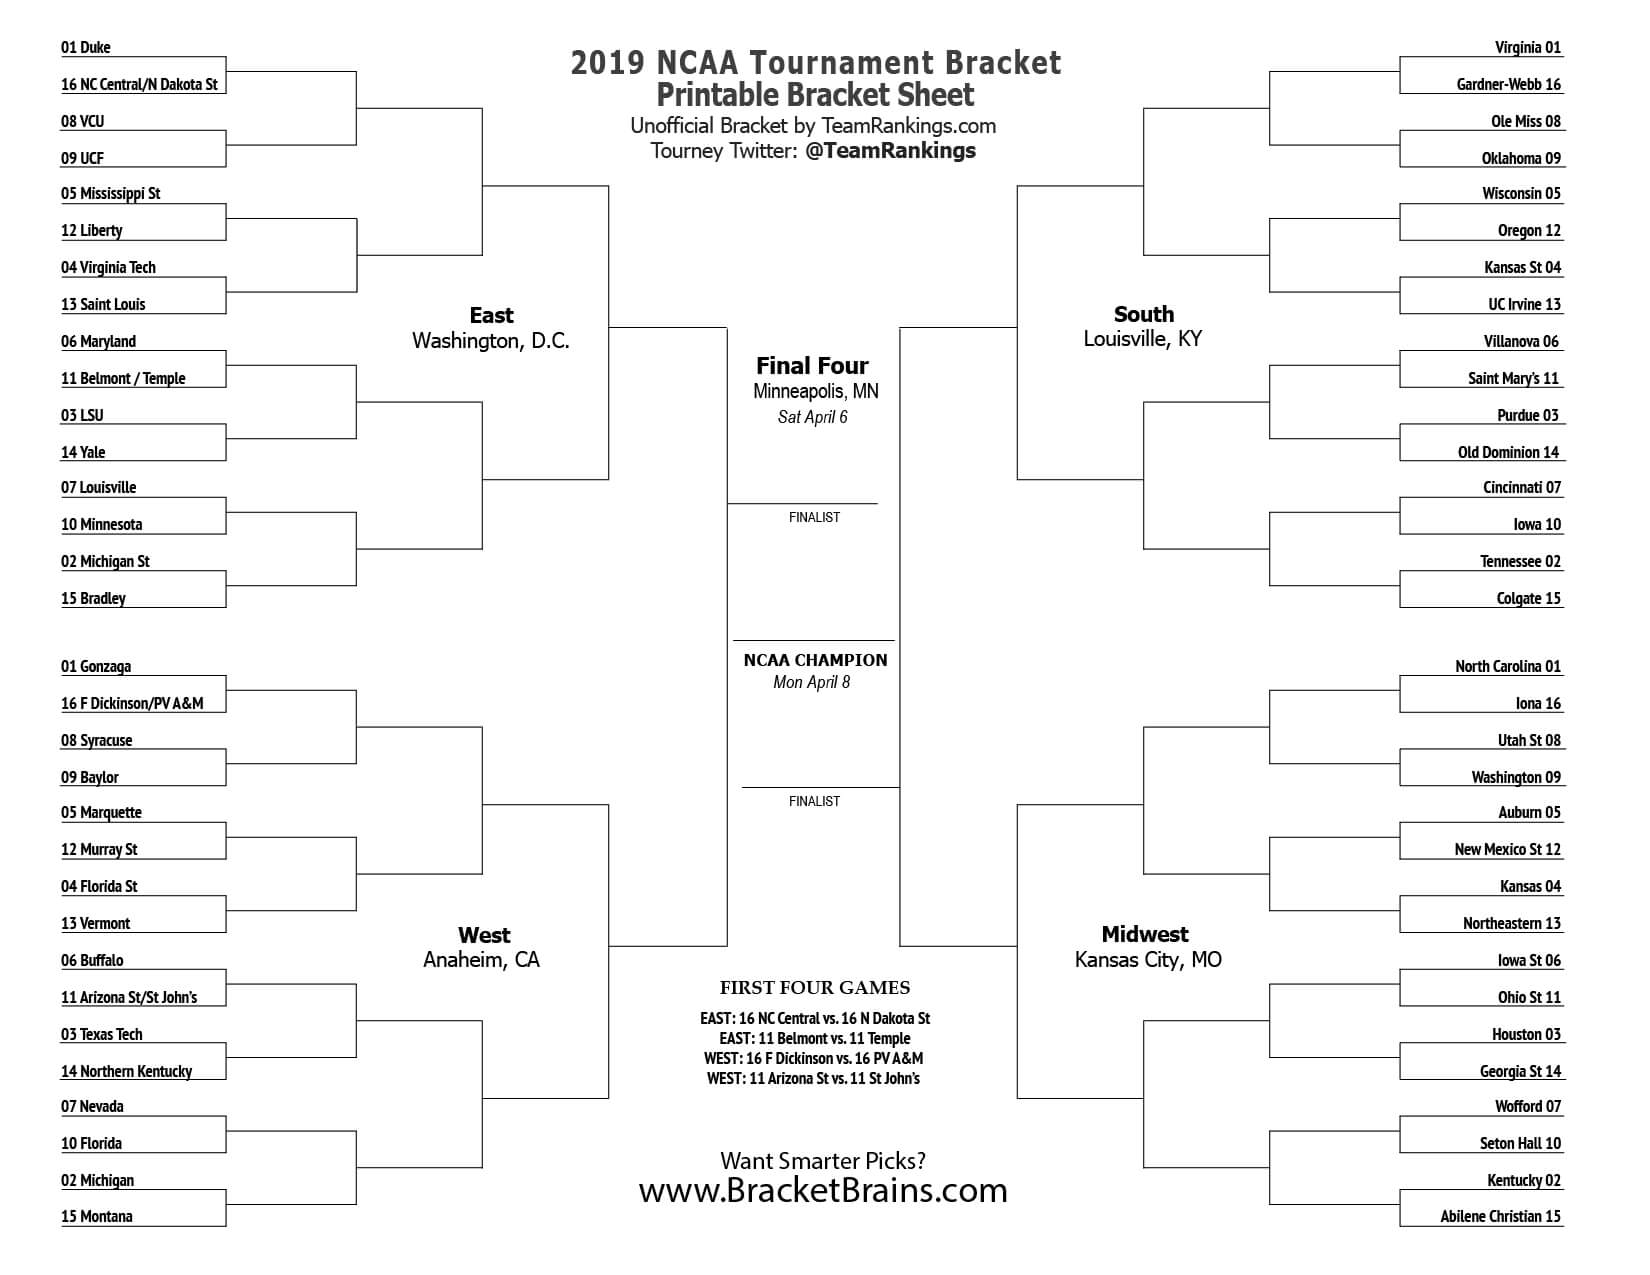 photograph relating to Printable Tournament Bracket named NCAA Printable Bracket 2019 -- No cost March Insanity Brackets